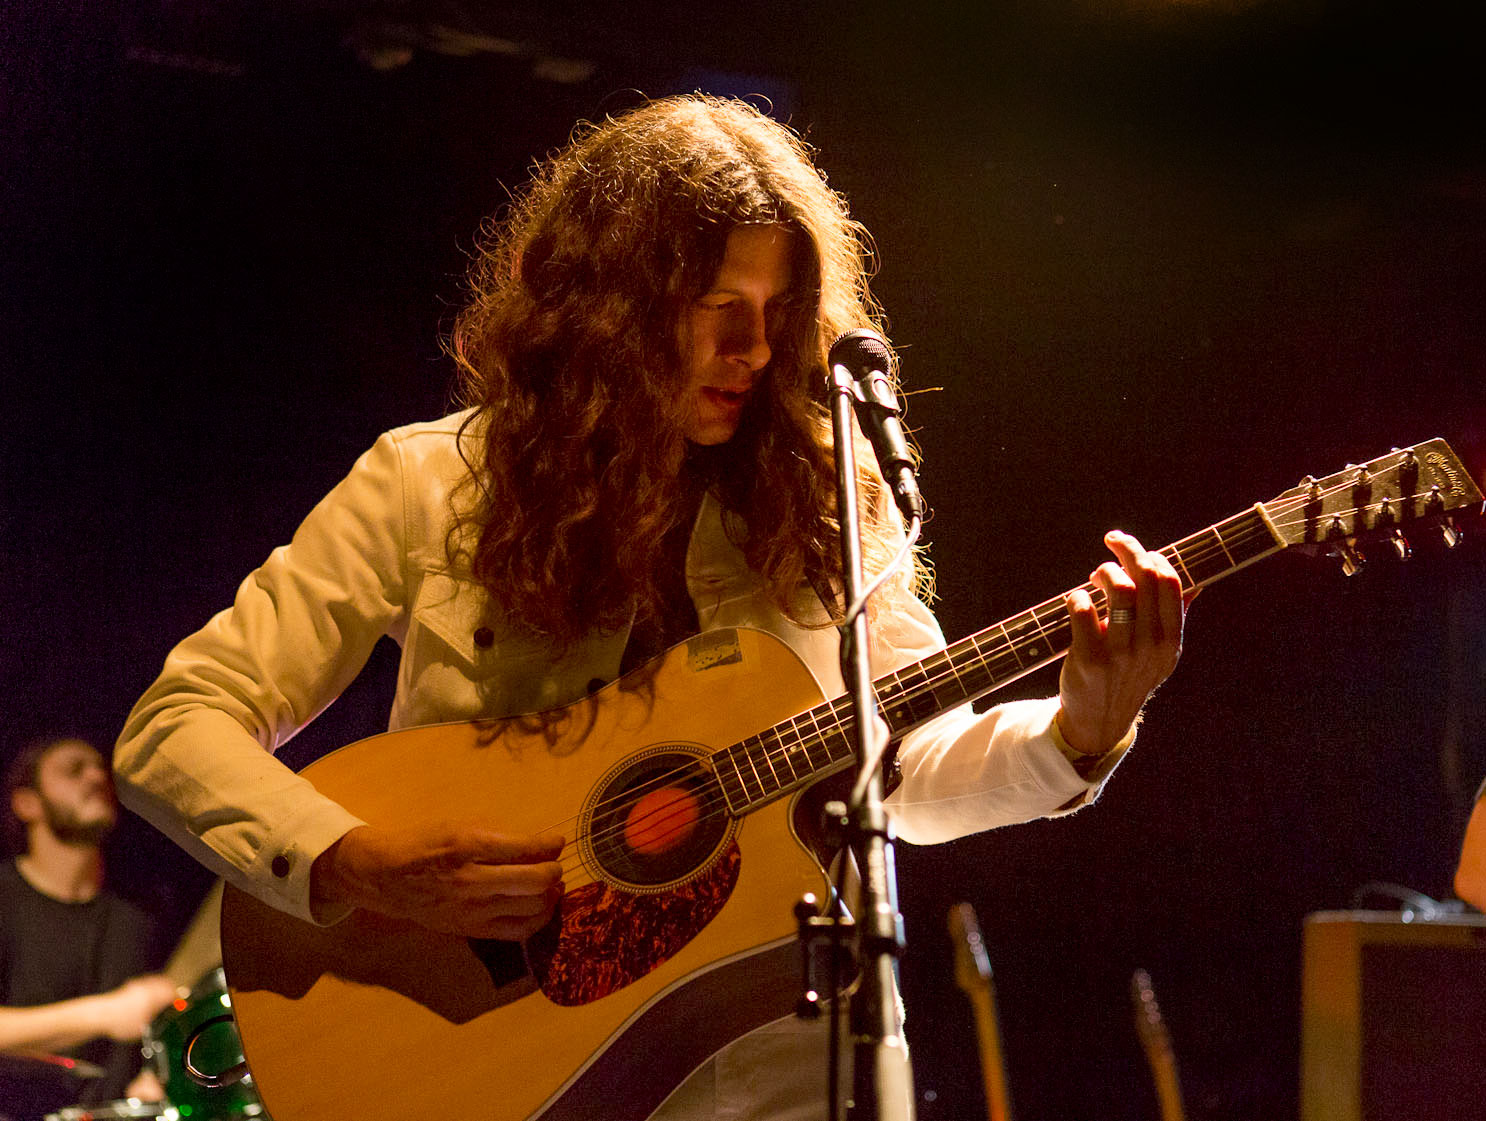 Kurt_Vile_at_echoplex-5